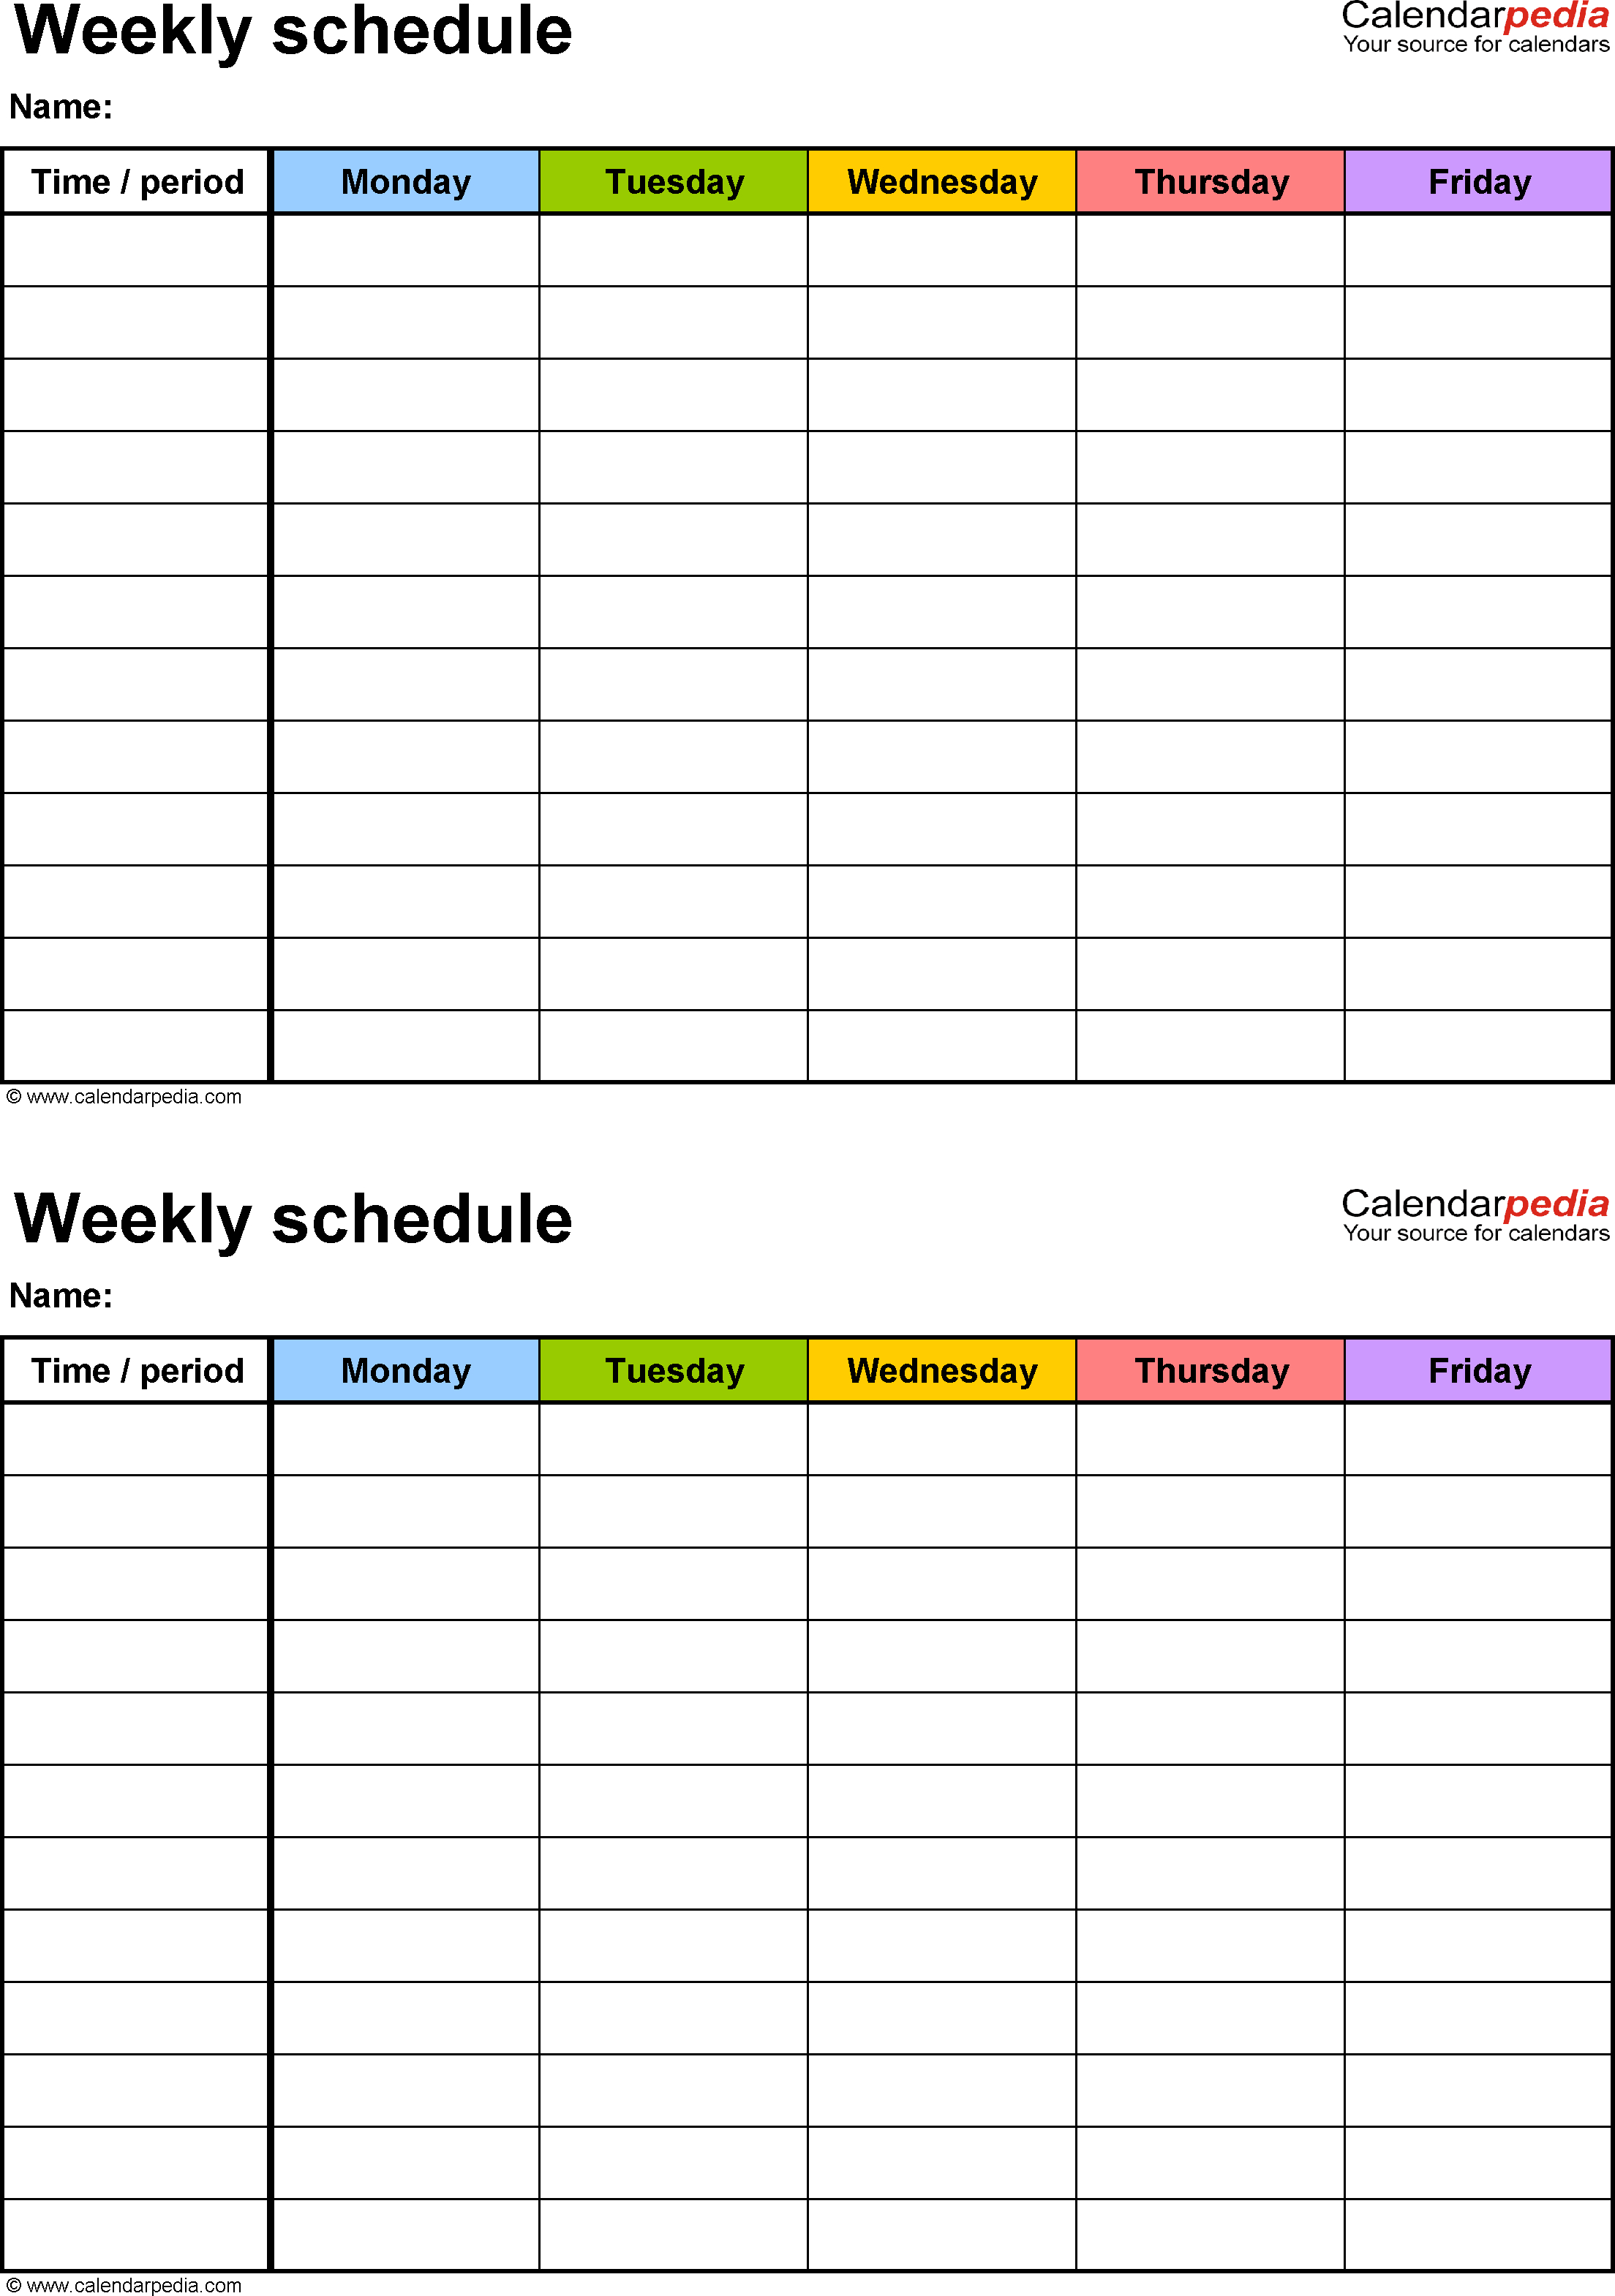 Free Weekly Schedule Templates For Word - 18 Templates with regard to 5 Day Calendar Template Word